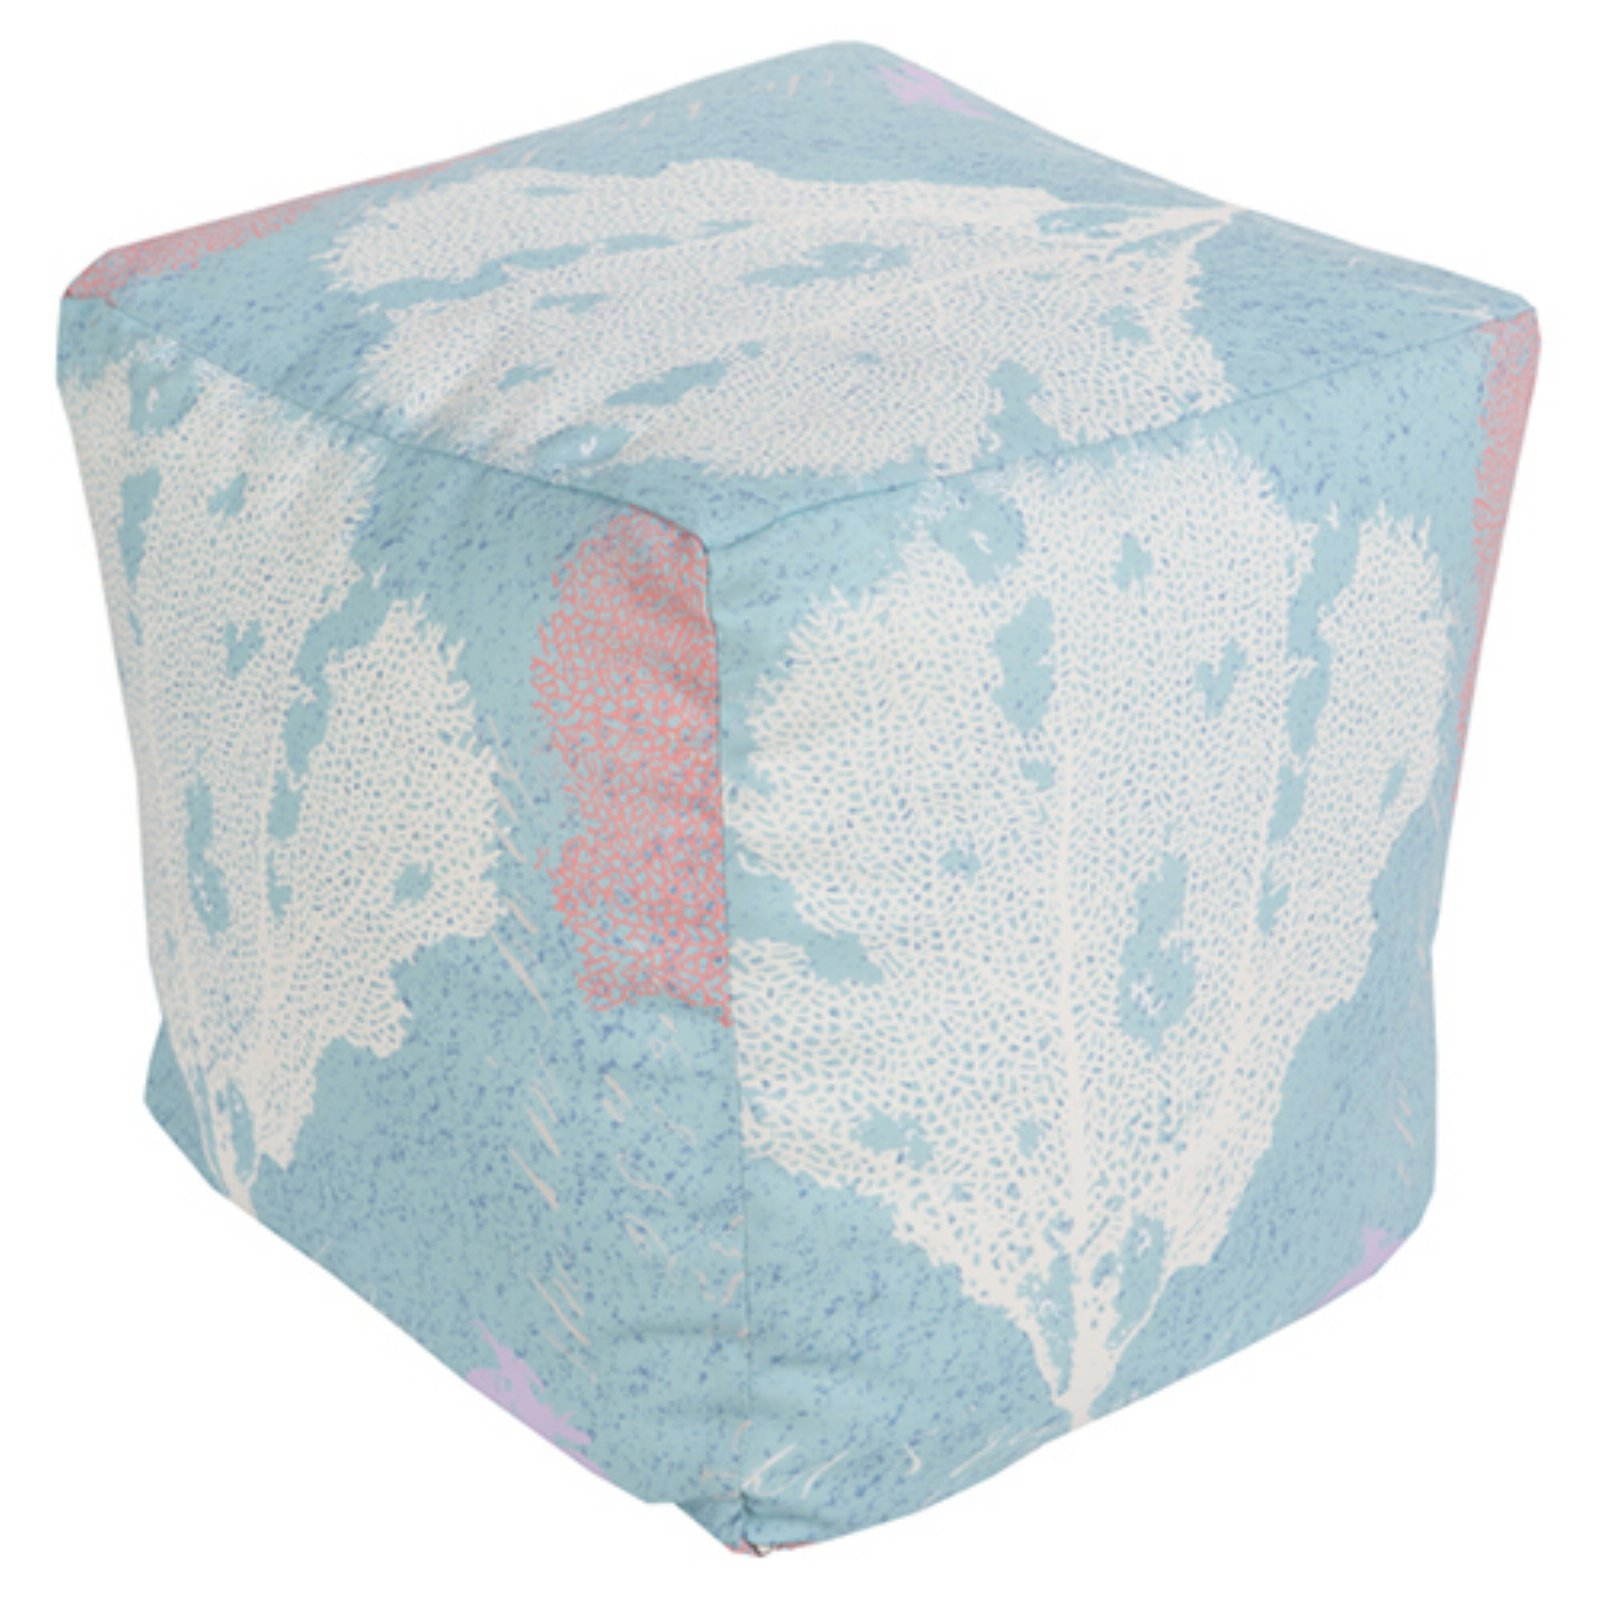 Surya 18 x 18 in. Outdoor Coral Cube Pouf